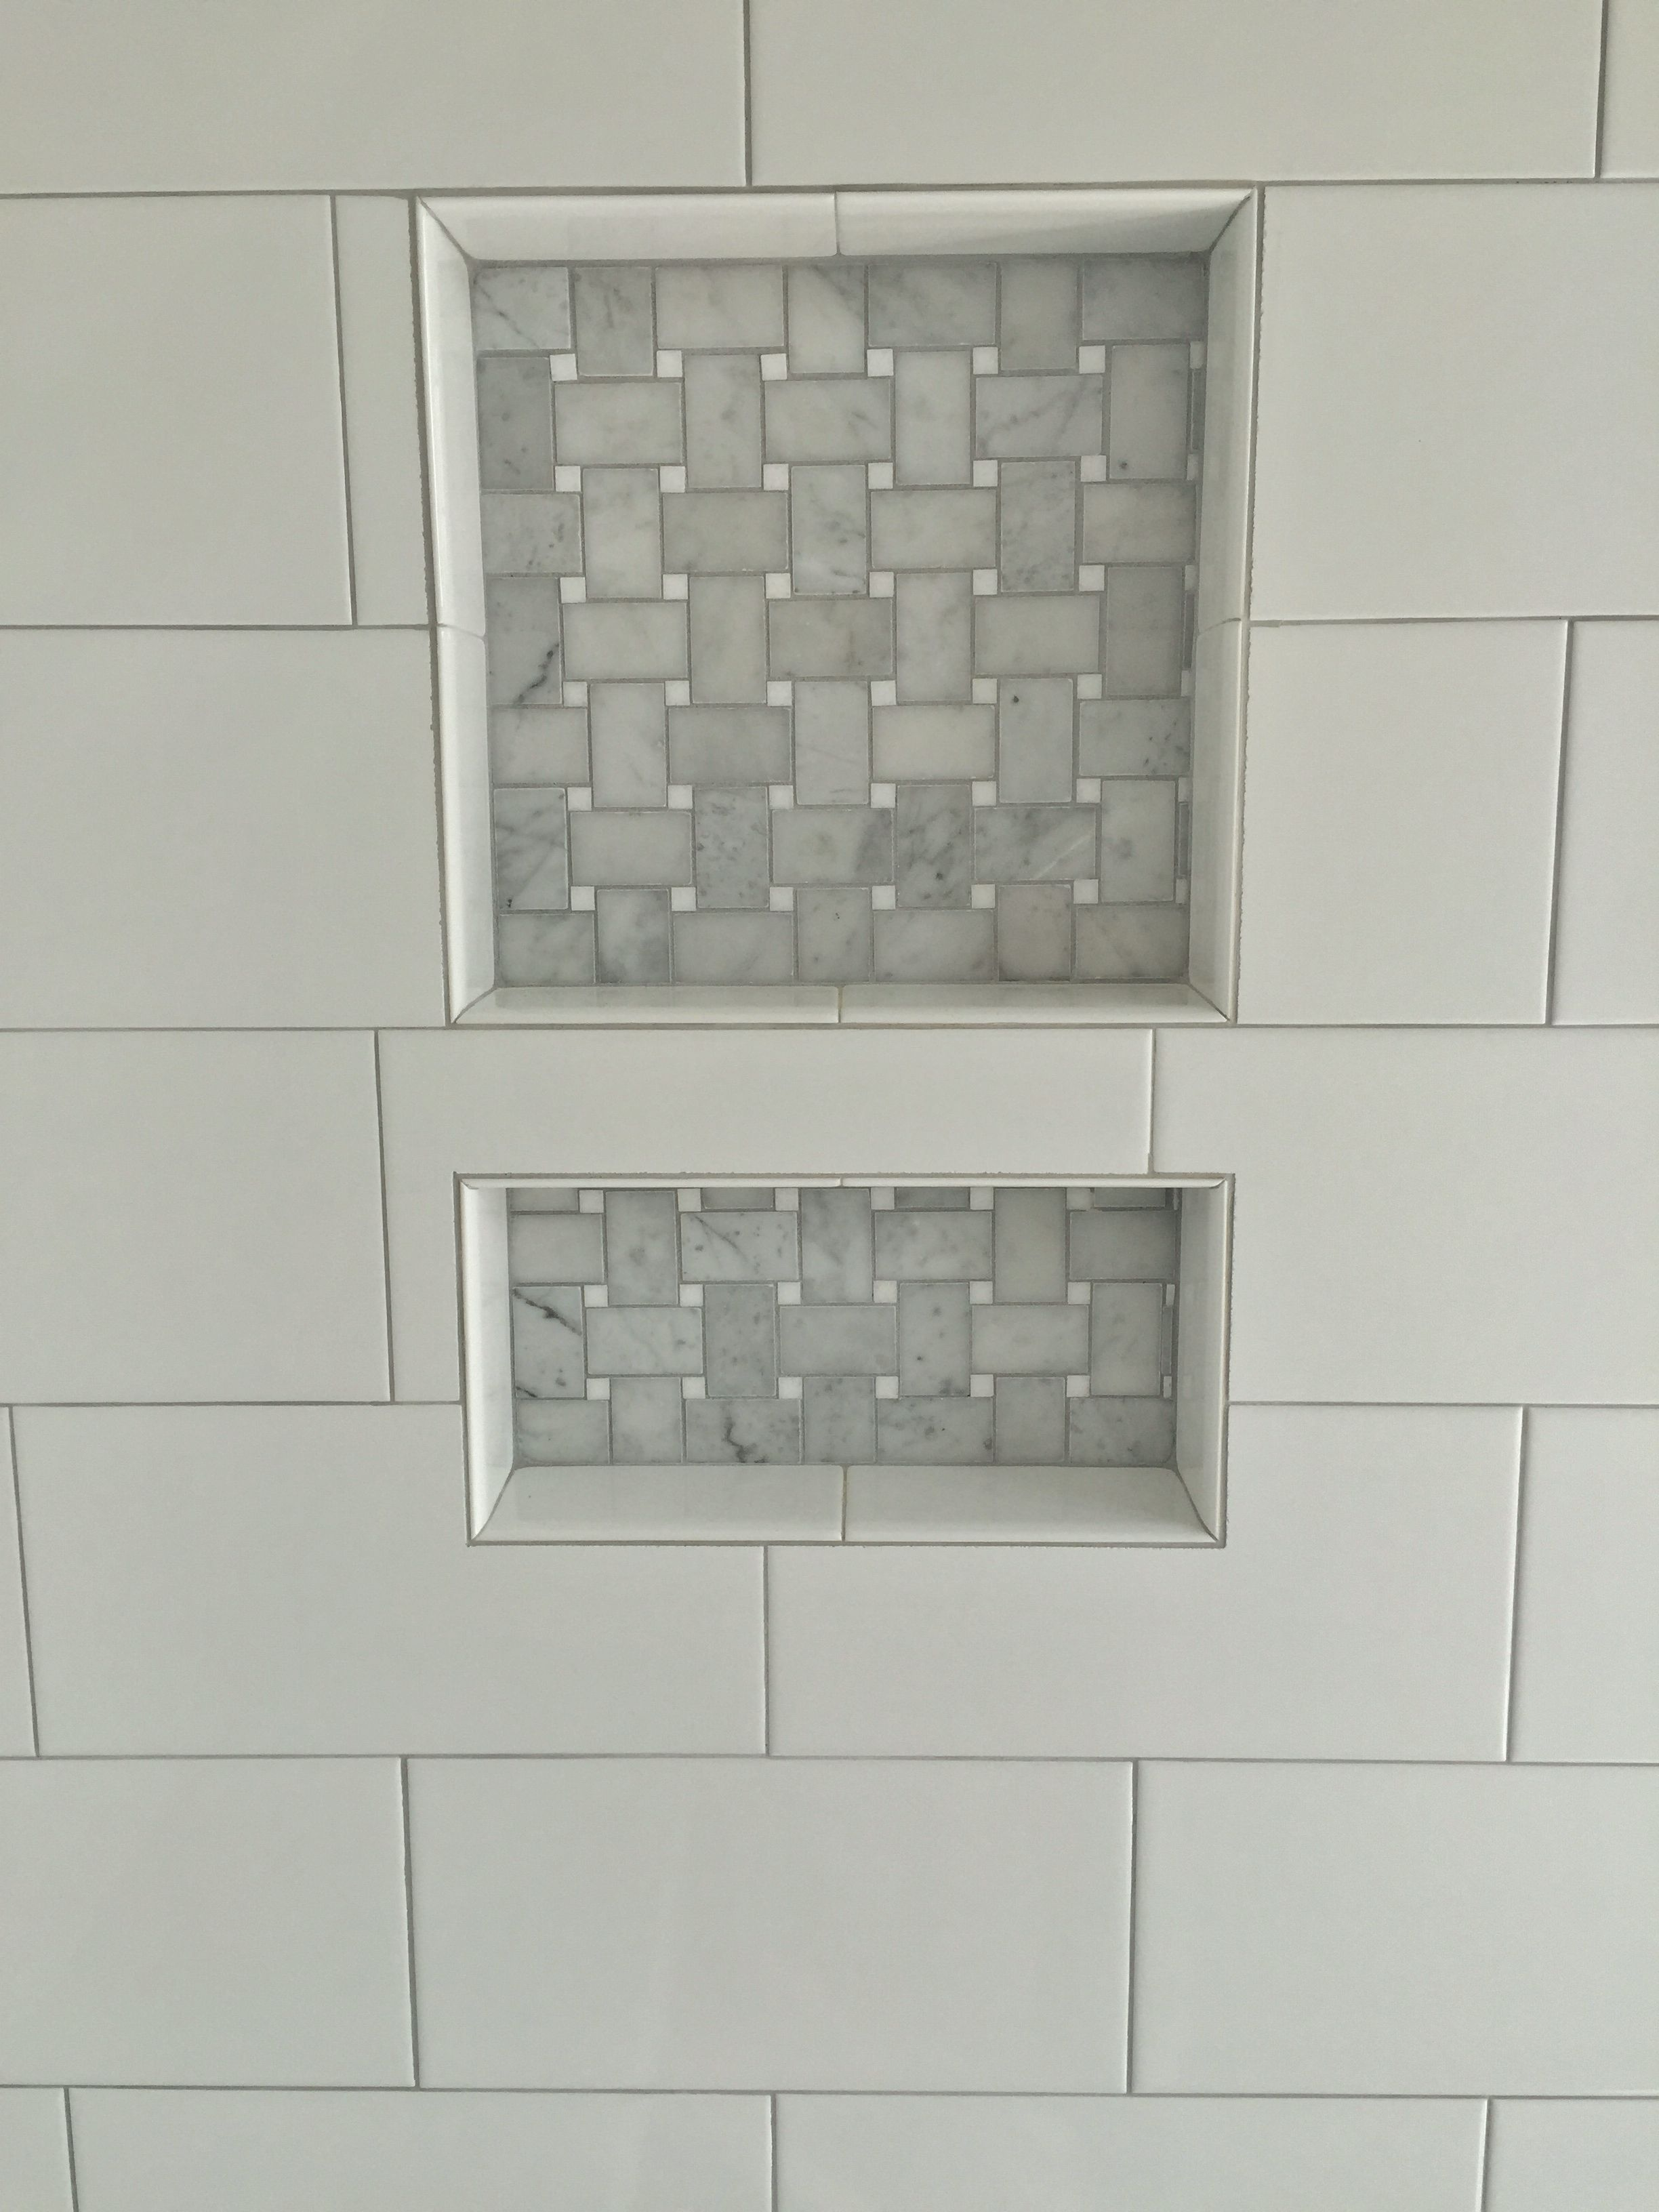 6x12 white porcelain tile with stone basketweave accent in niche 6x12 white porcelain tile with stone basketweave accent in niche dailygadgetfo Image collections